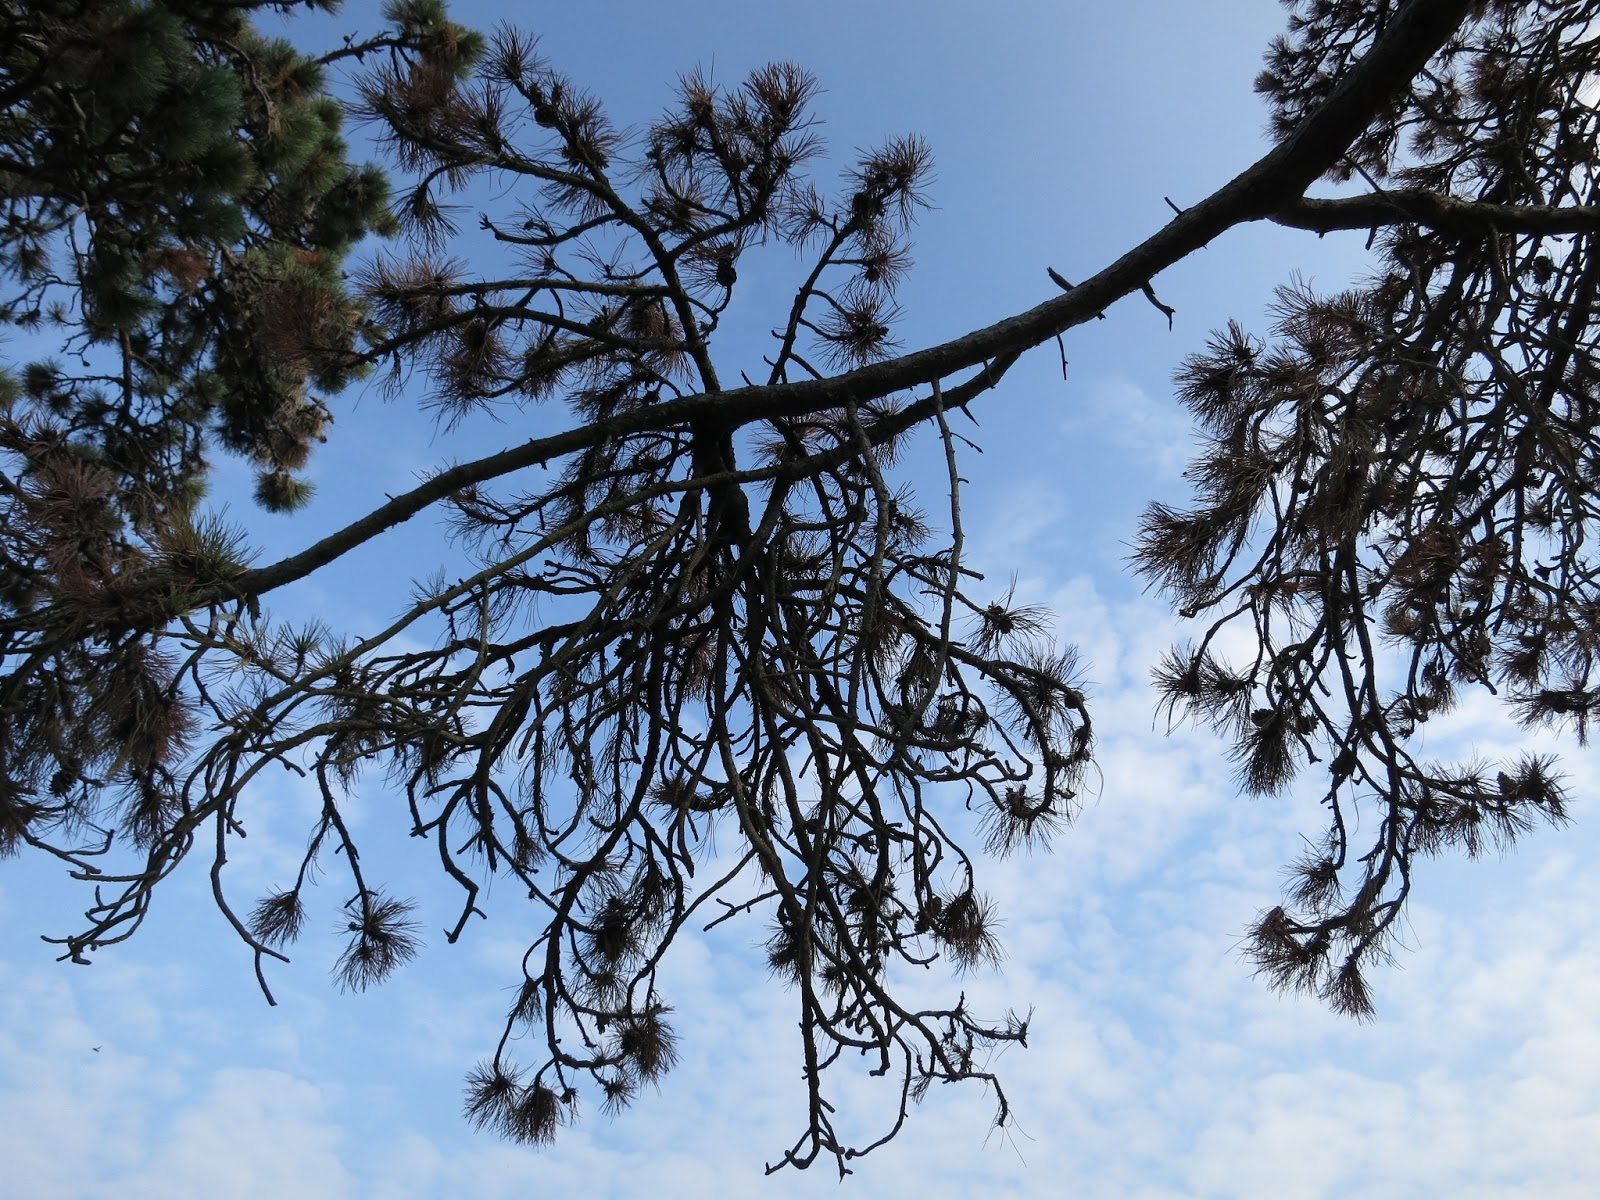 Looking up at branch of tree with long needles